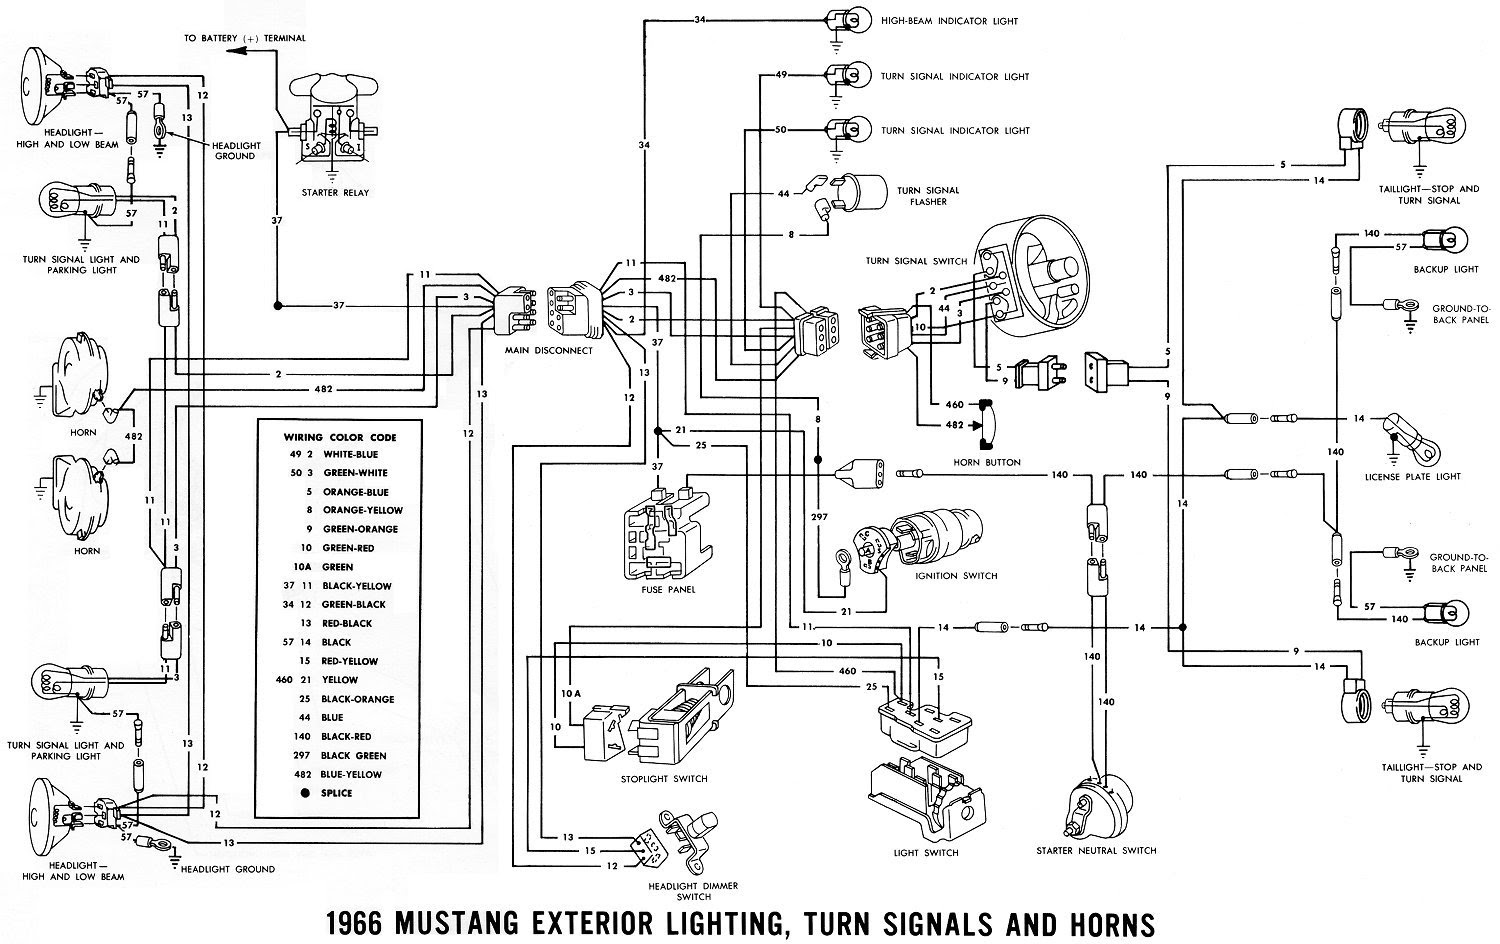 Wiring Diagram: 9 Ford F250 Starter Solenoid Wiring Diagram